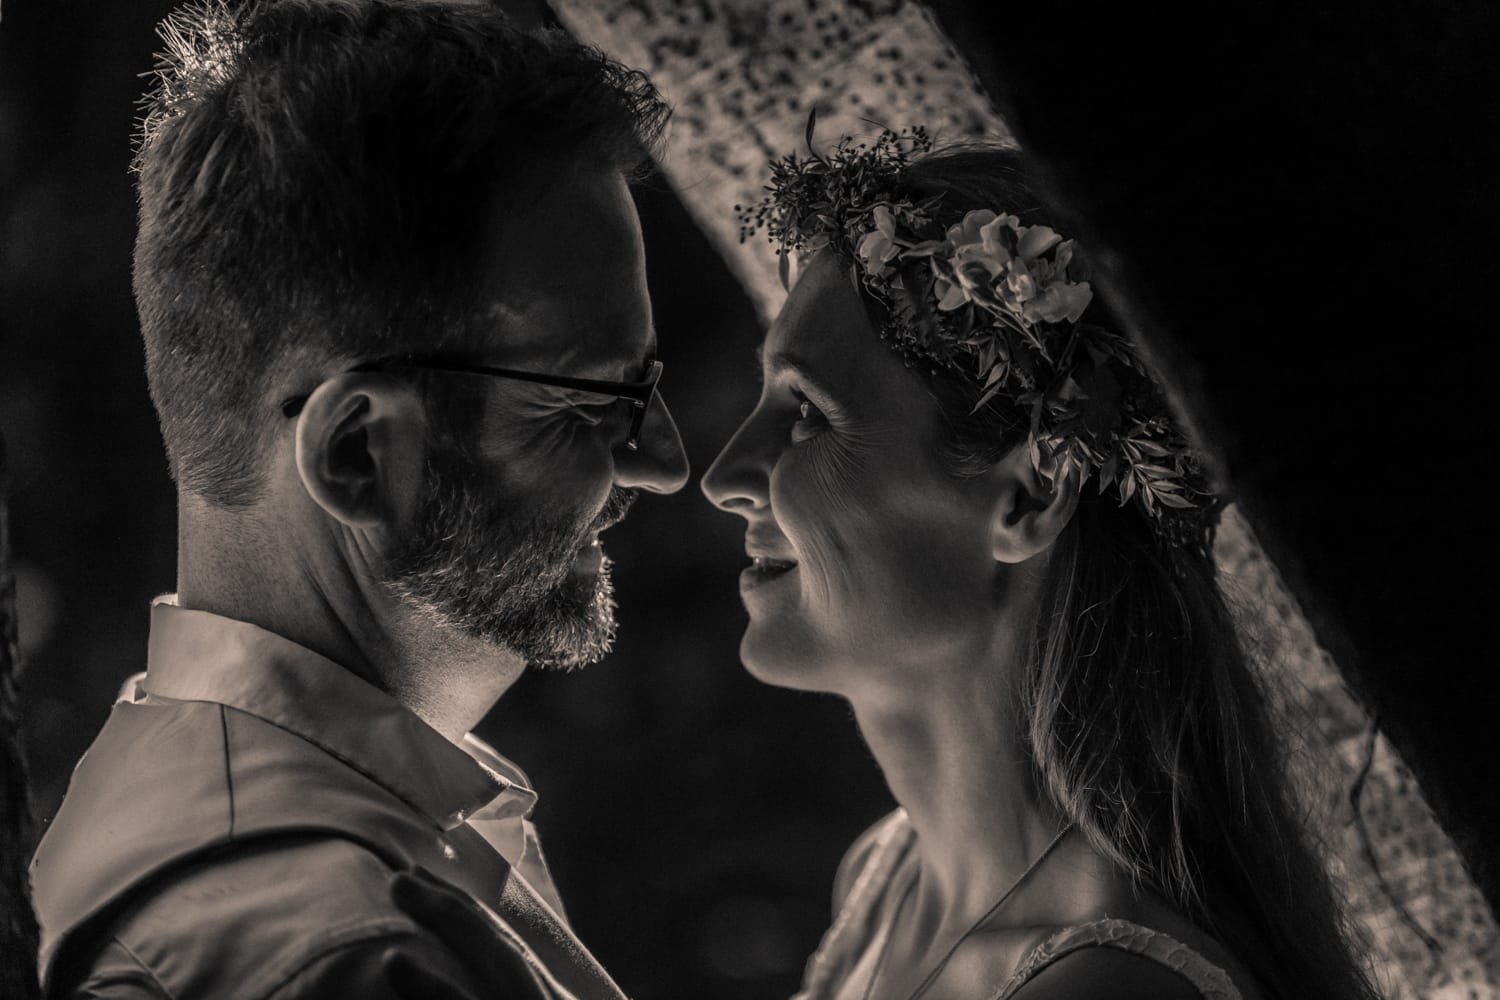 Dramatic black and white bride and groom wedding portrait in rainforest.